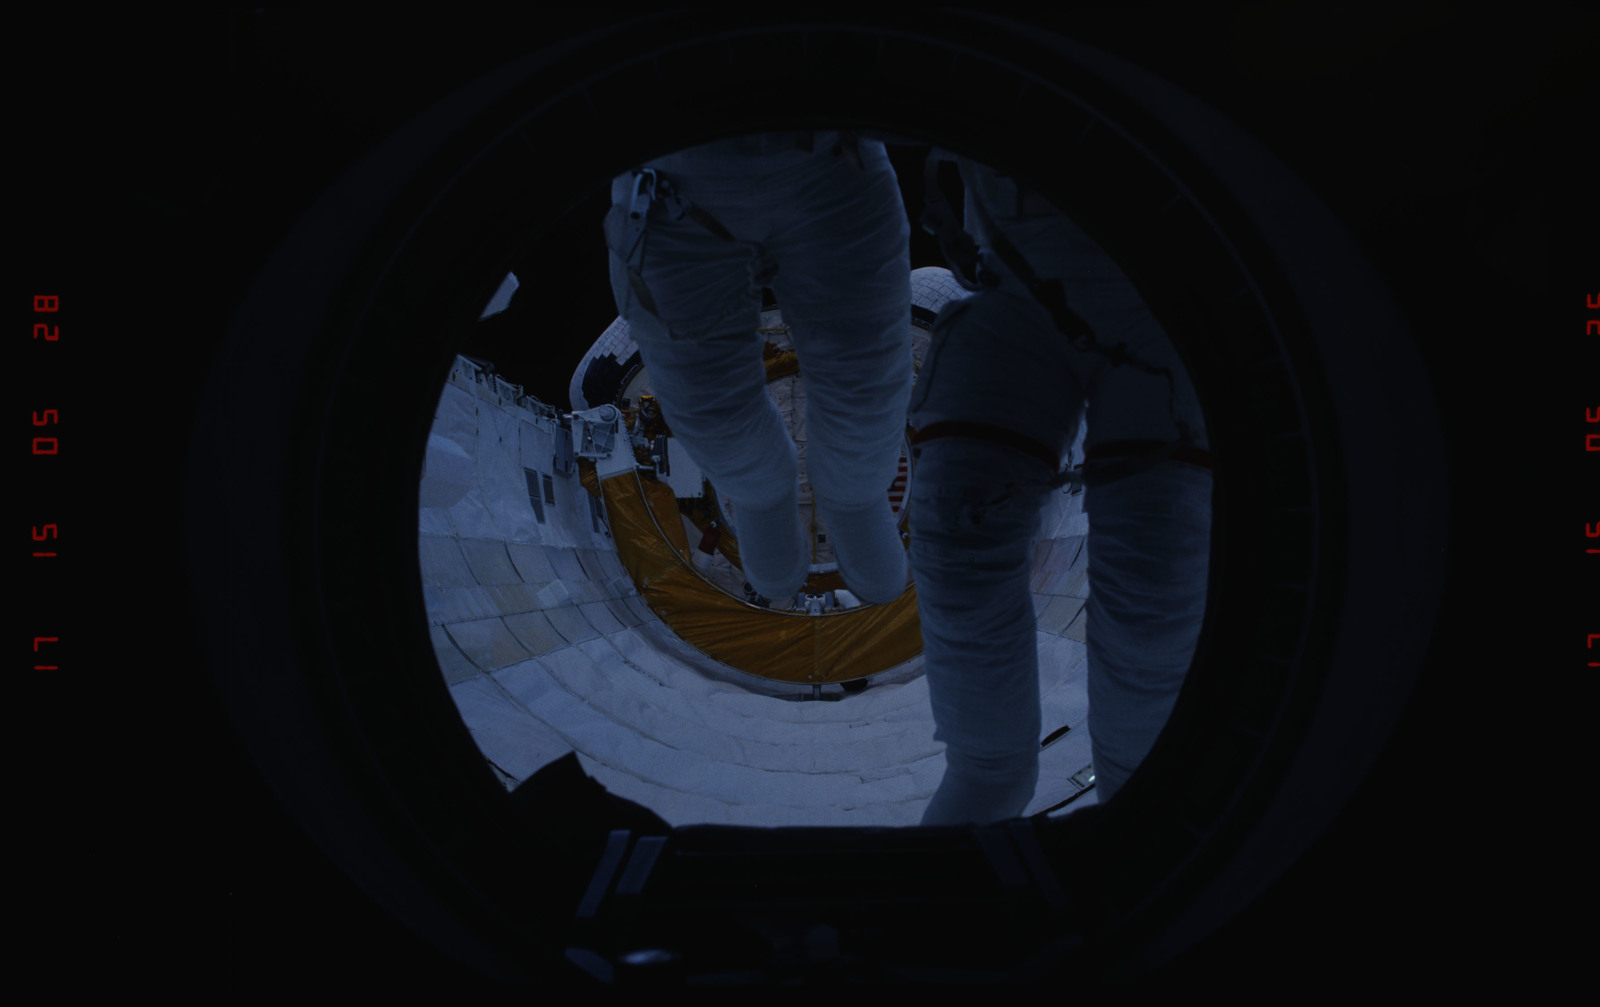 STS054-05-021 - STS-054 - Views of EVA Crewmembers in the payload bay returning to middeck air lock.